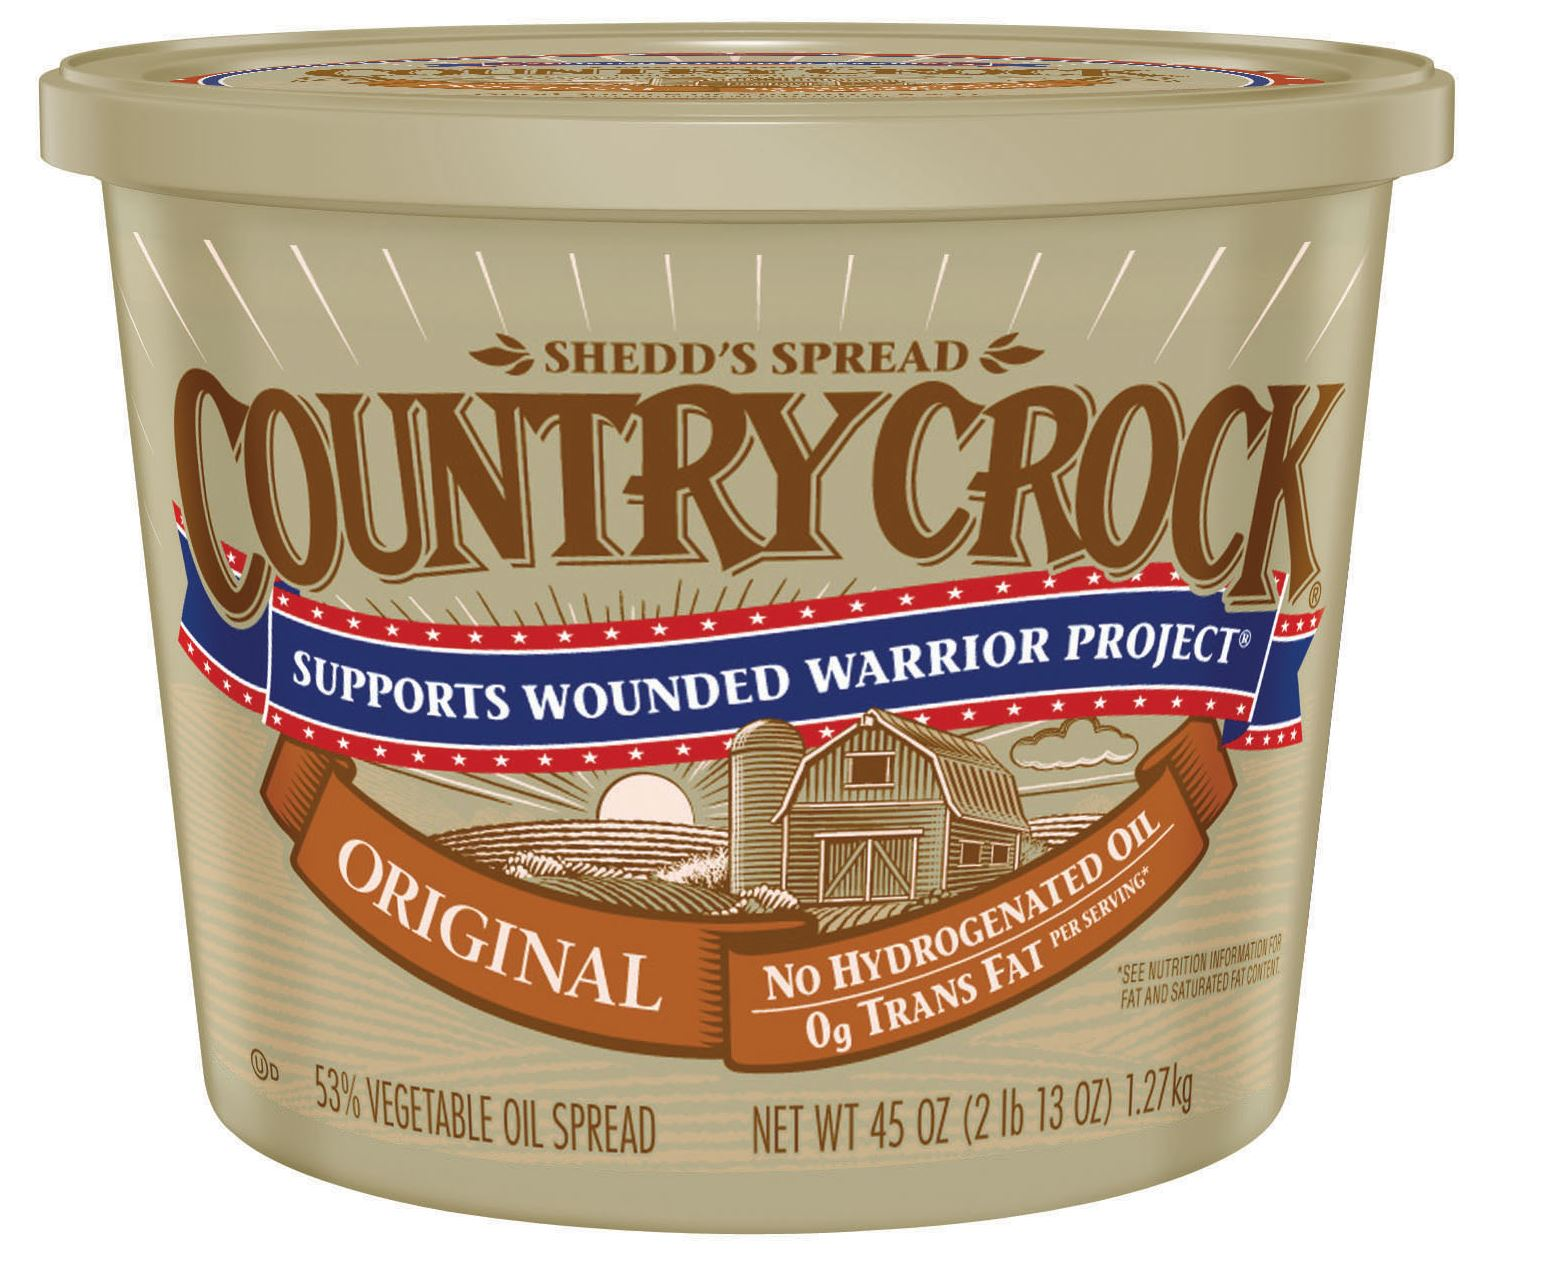 Shedd's Spread Country Crock is one of the many types of margarine sold as an alternative to butter. Overall, Country Crock is healthier than butter because of its lower fat content.